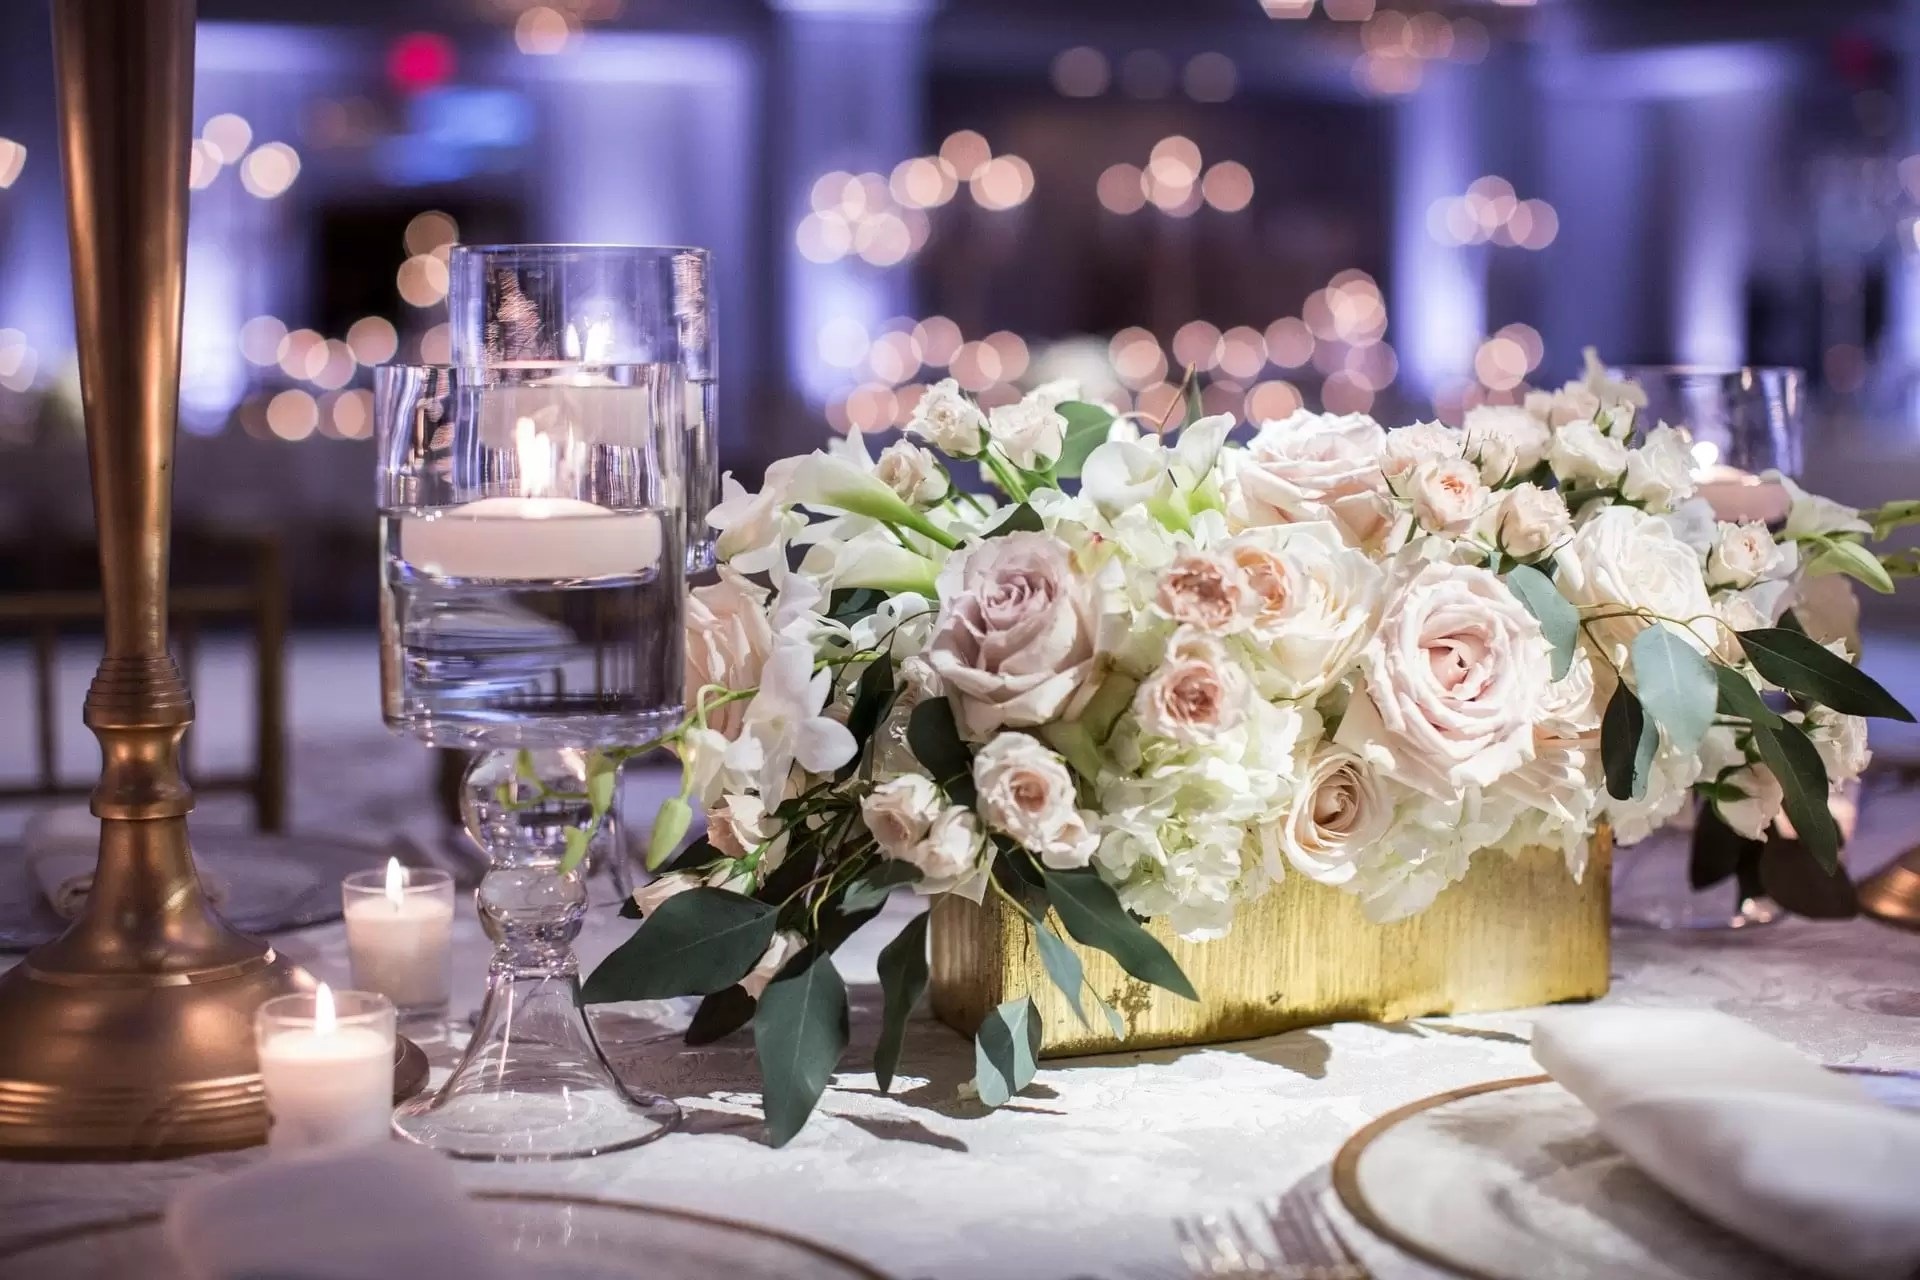 5 Lively Tips For an Unforgettable Reception